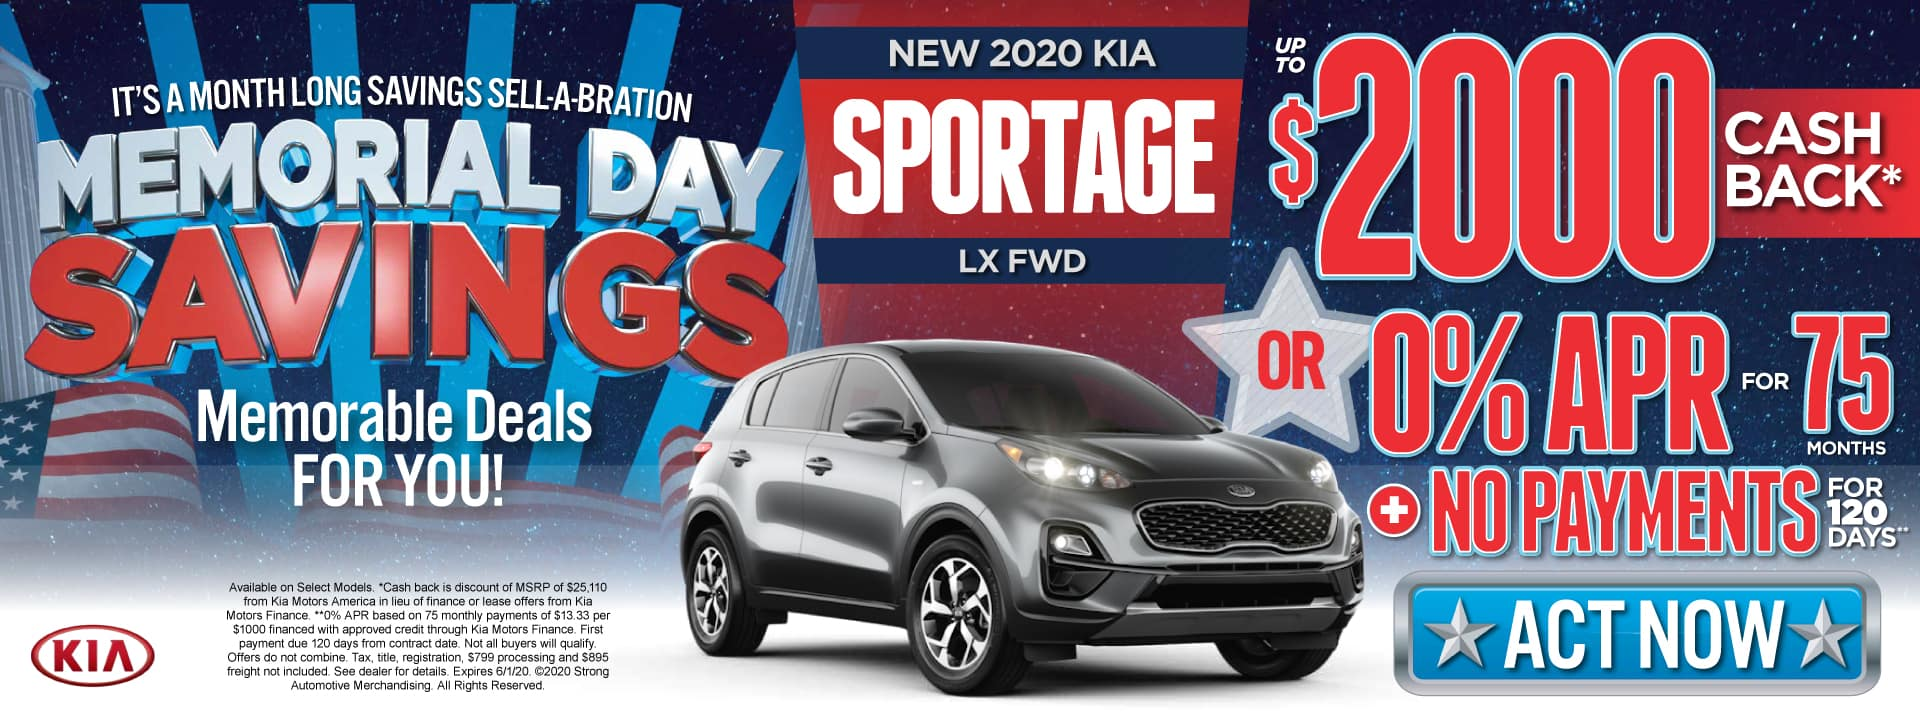 New 2020 Kia Sportage - $2000 Cash Back or 0% APR for 75 months - Shop Now